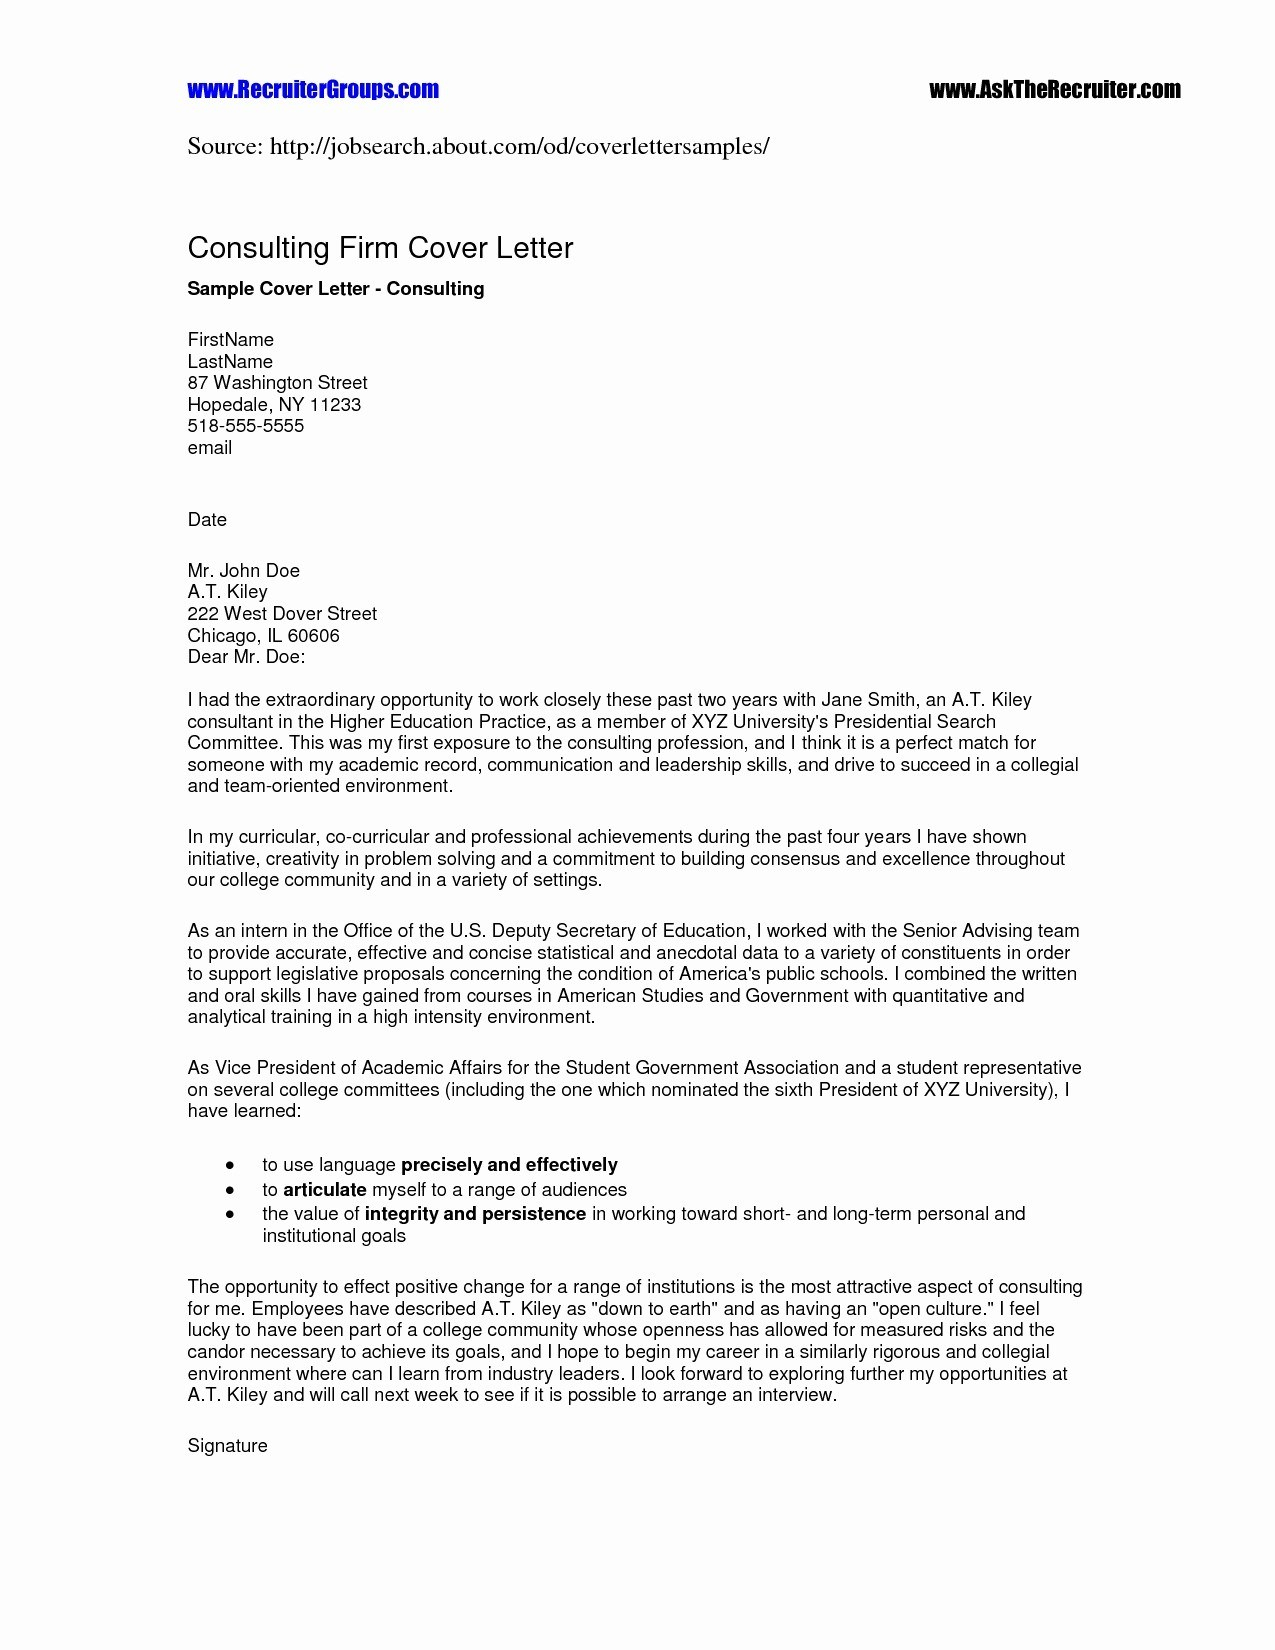 Job Application Letter Template Word - Resume and Cover Letter Templates Fresh Teacher Cover Letter